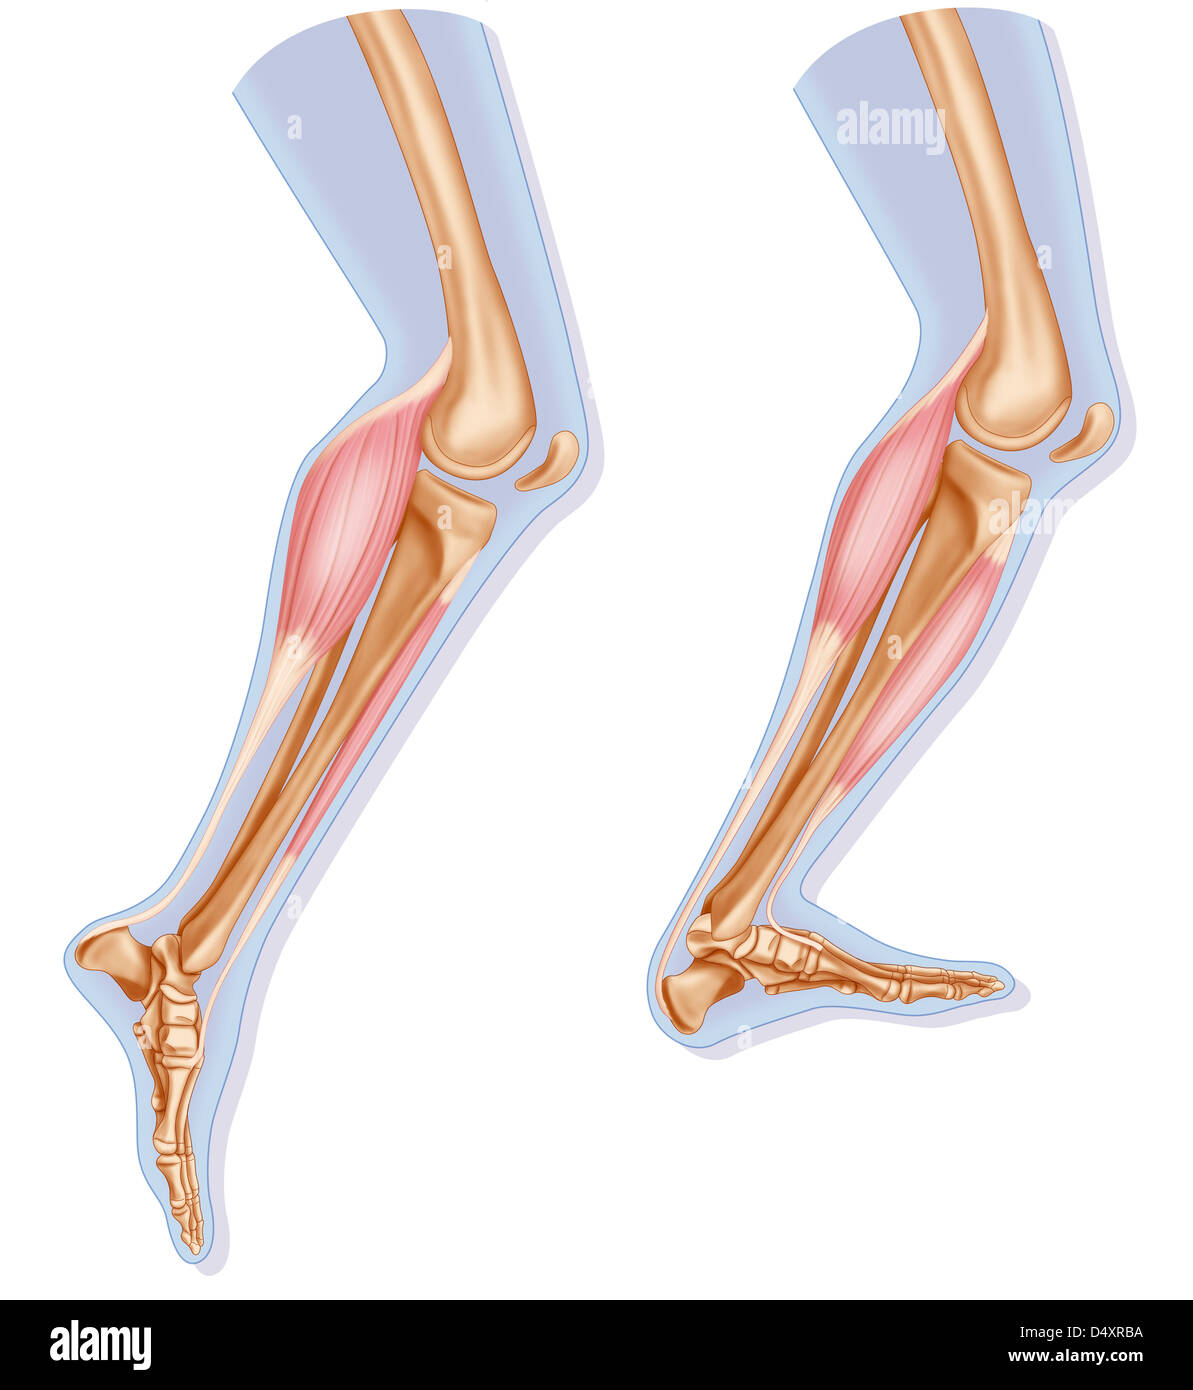 Lower Limb Muscle Stock Photos & Lower Limb Muscle Stock Images - Alamy